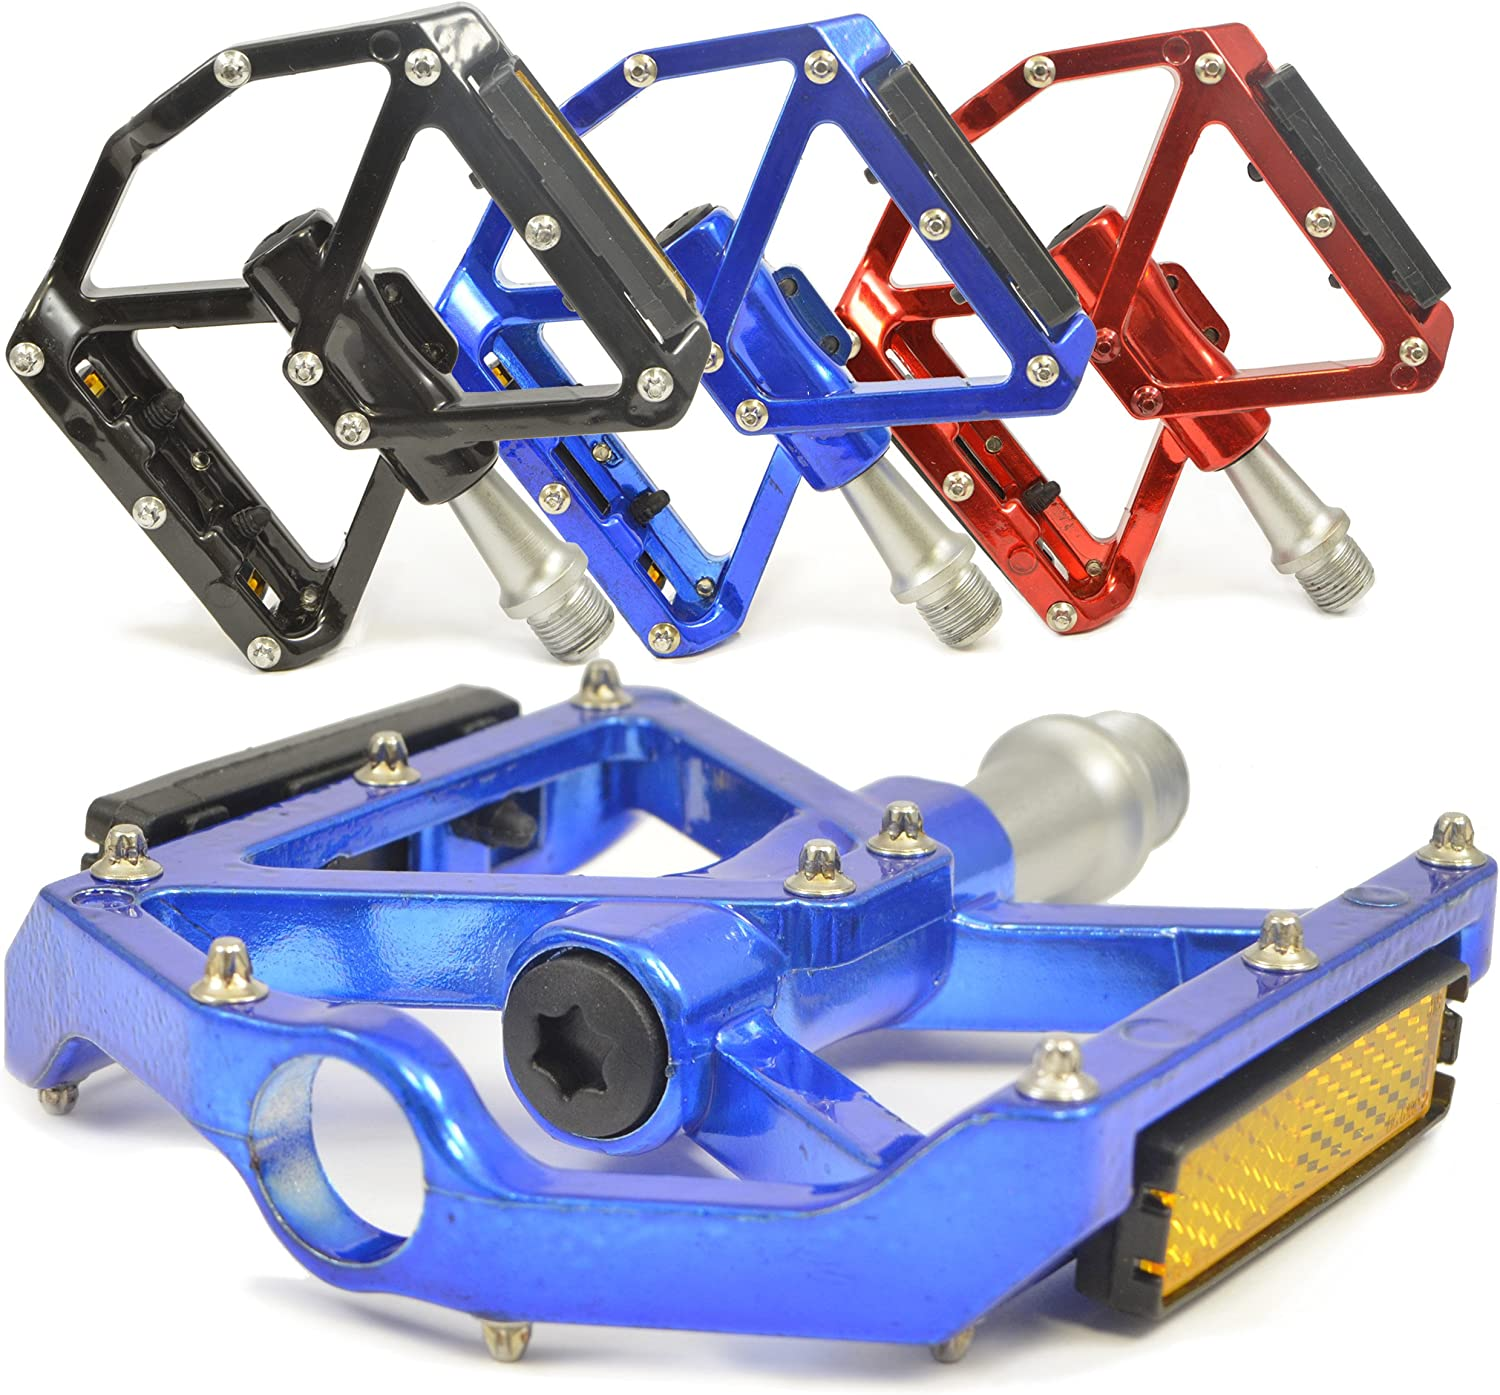 Lumintrail Mountain Bike Platform Pedals